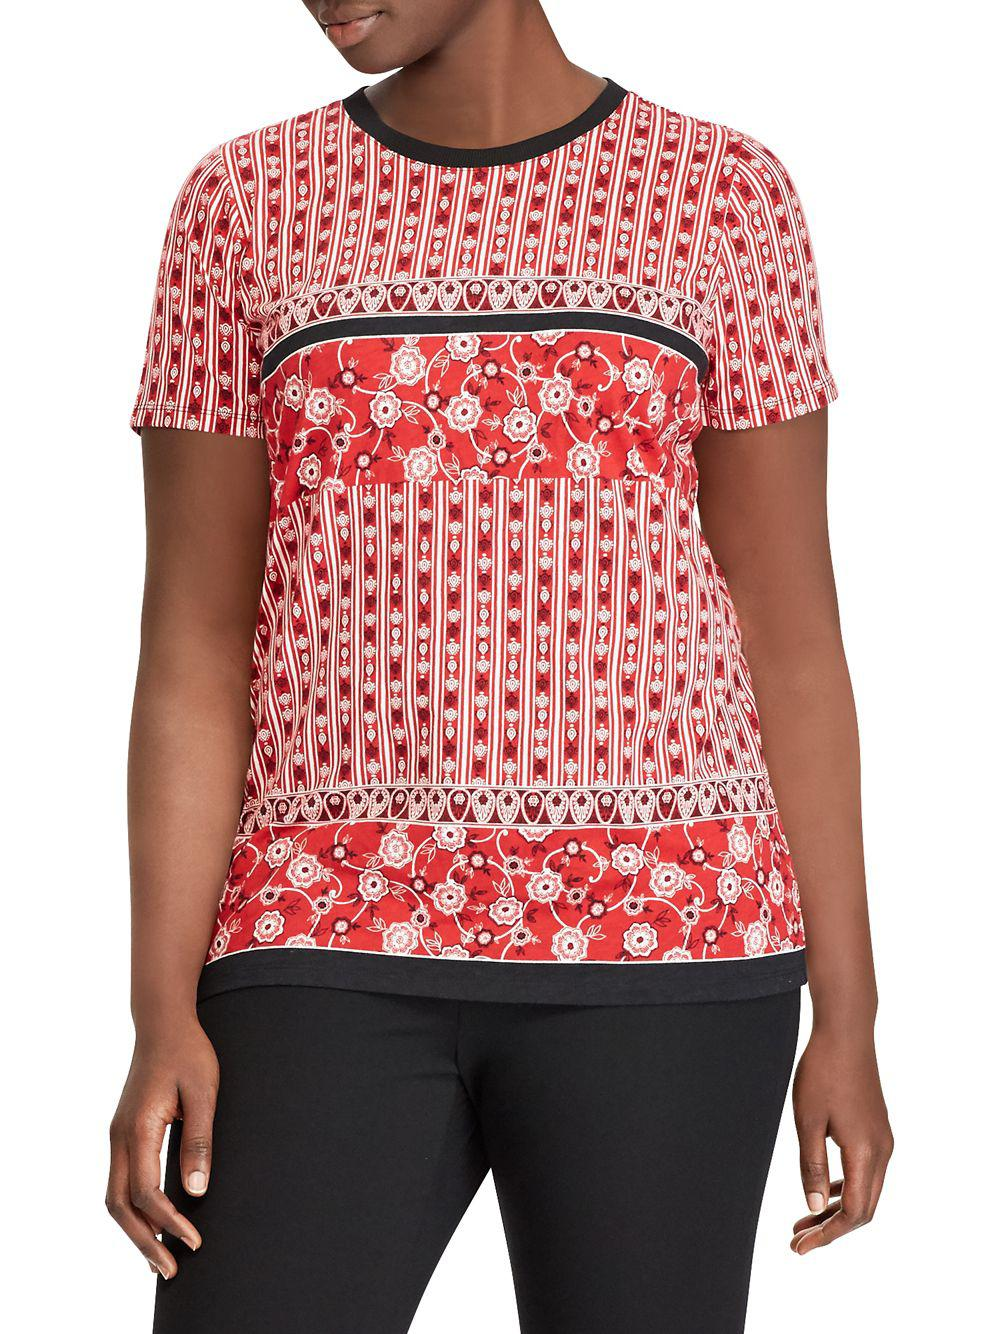 62c2db5d6881e Lyst - Lauren By Ralph Lauren Plus Printed T-shirt in Pink